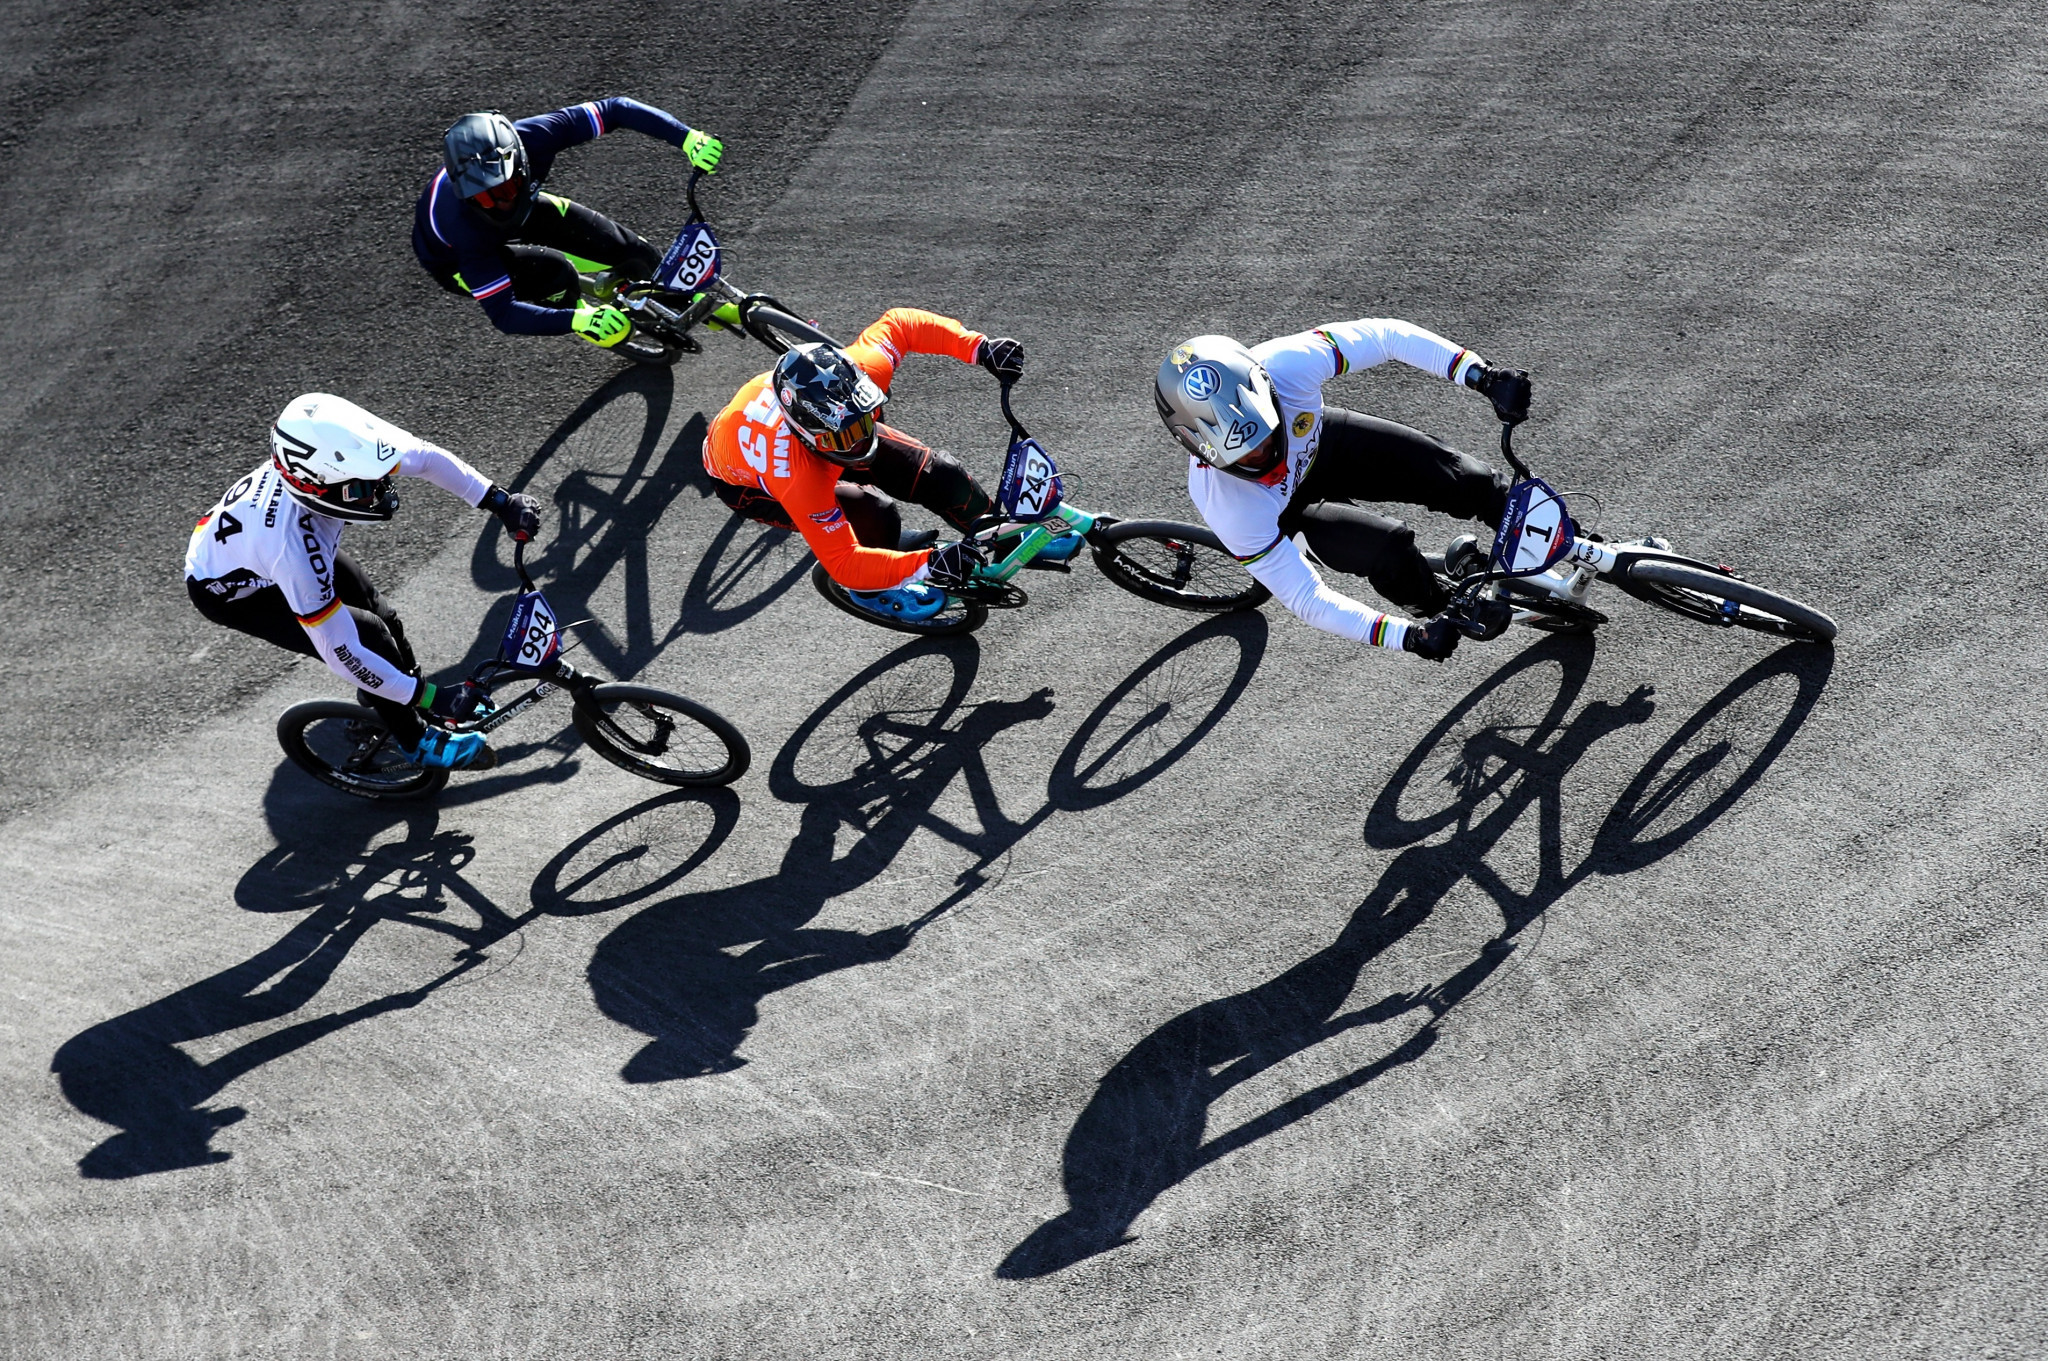 World champion Sylvain André of France cruised through the opening BMX cycling motos round ©Getty Images